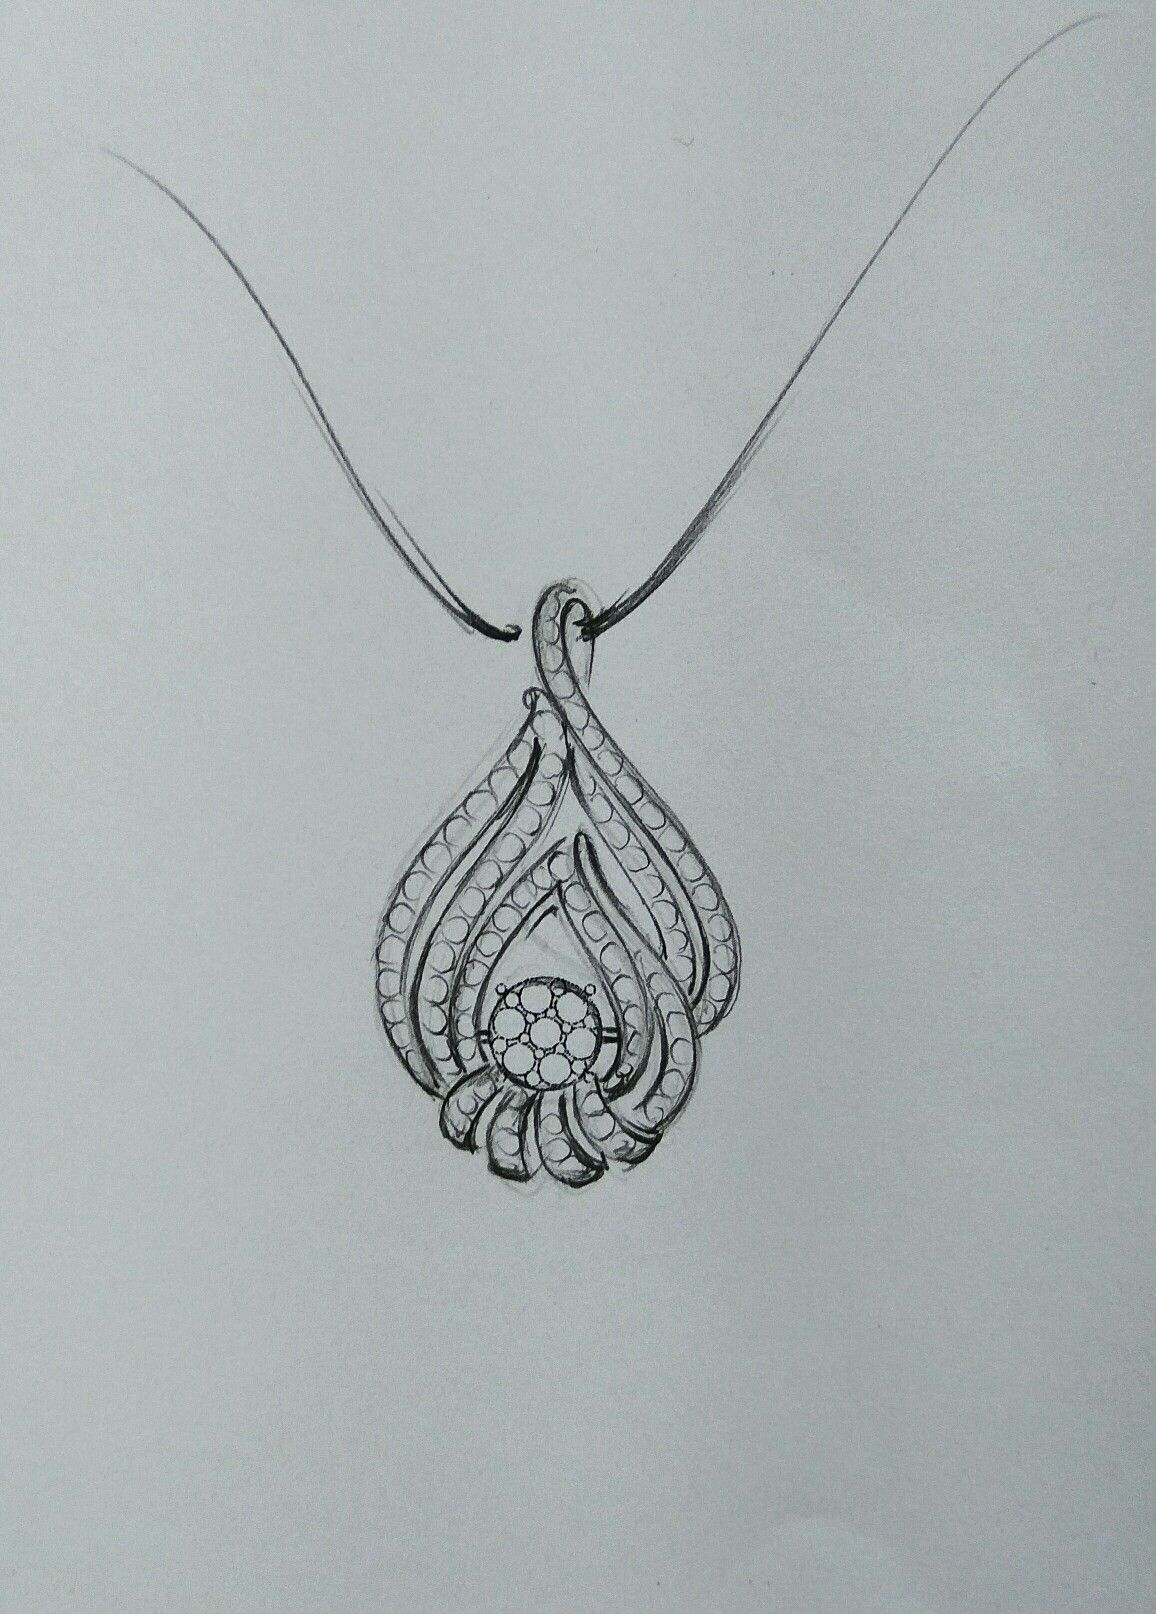 Pin By Melad Medo On Jewelry Design Jewellery Sketches Jewelry